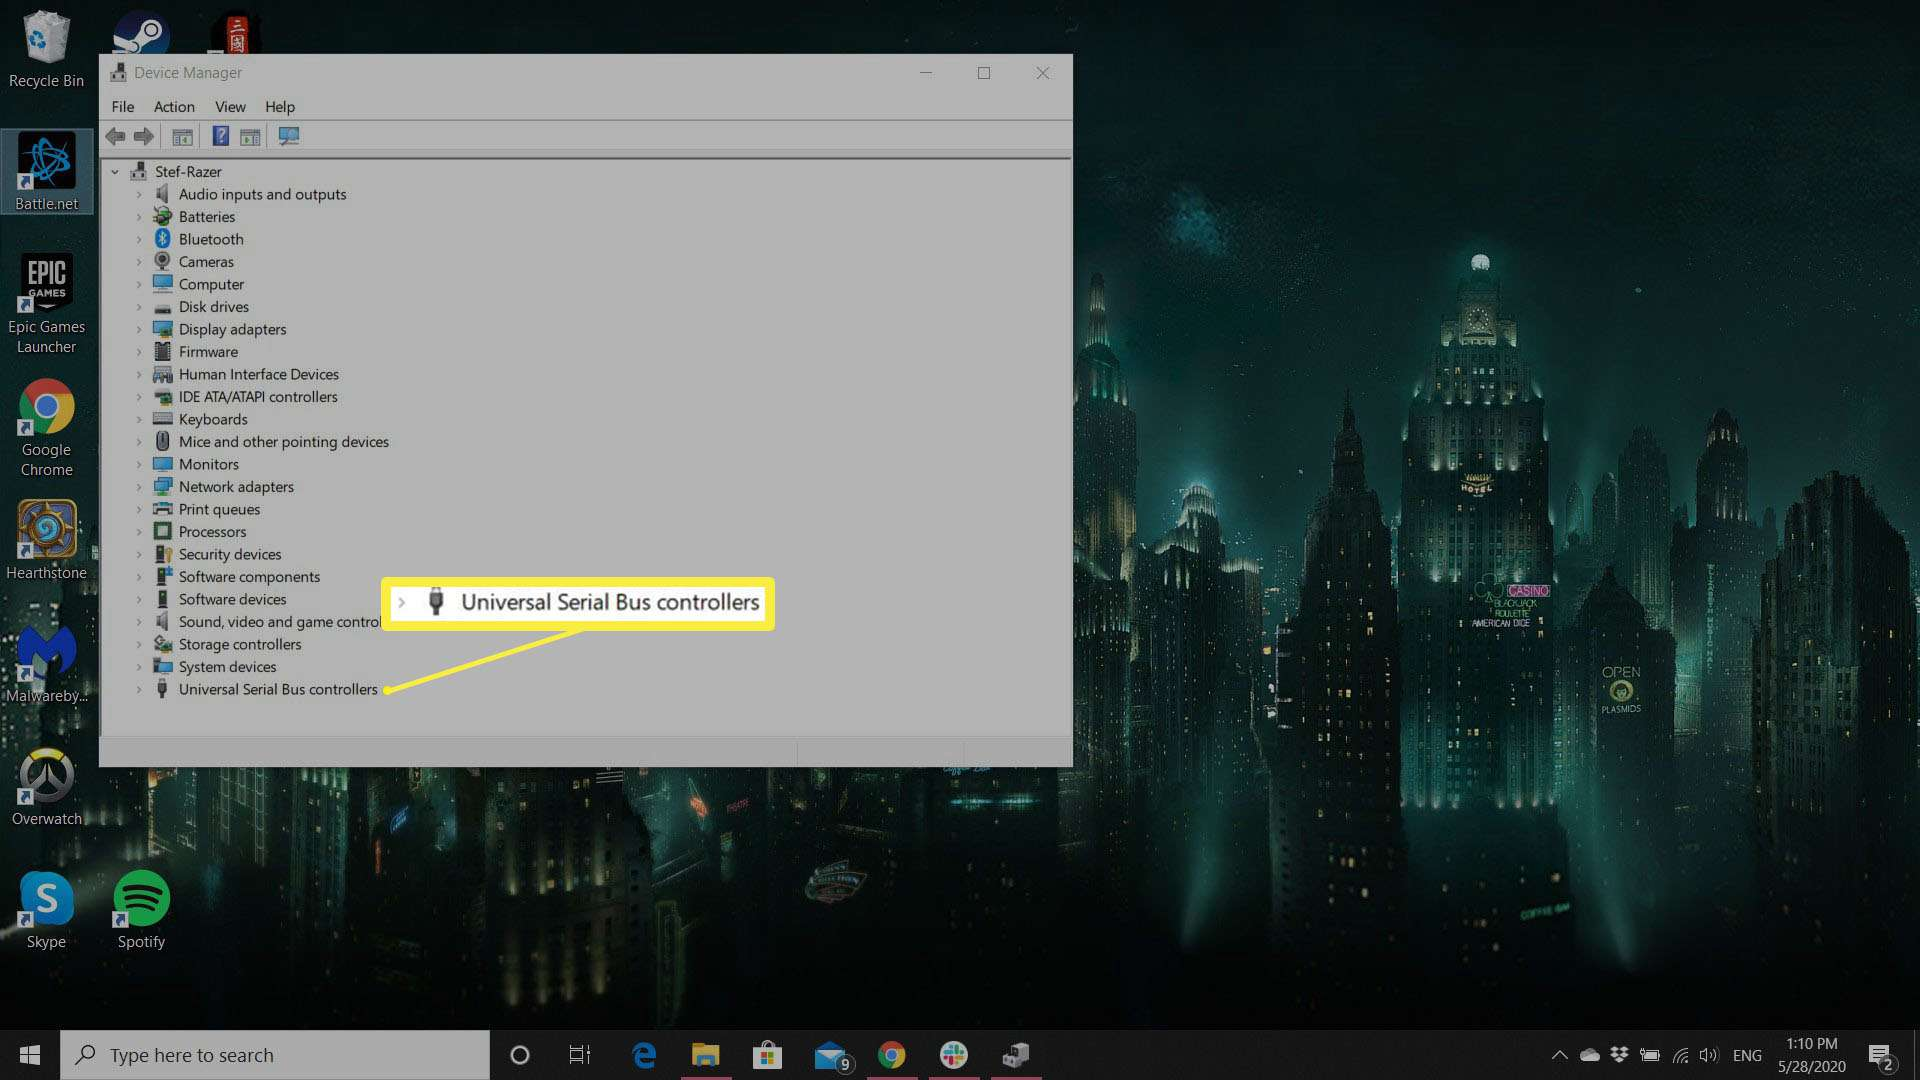 A screenshot showing the Device Manager panel in Windows.